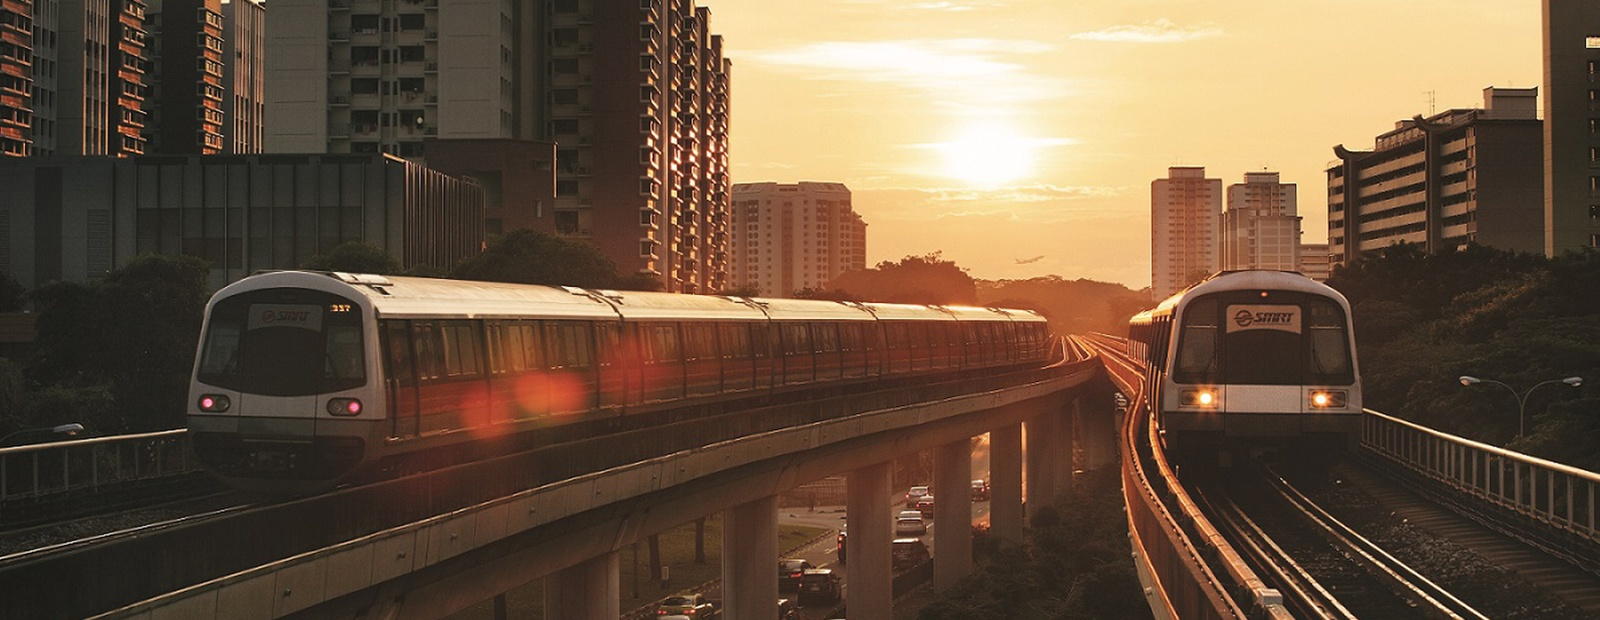 McLAREN APPLIED TECHNOLOGIES & SMRT COLLABORATE TO IMPROVE RAIL IN ASIA